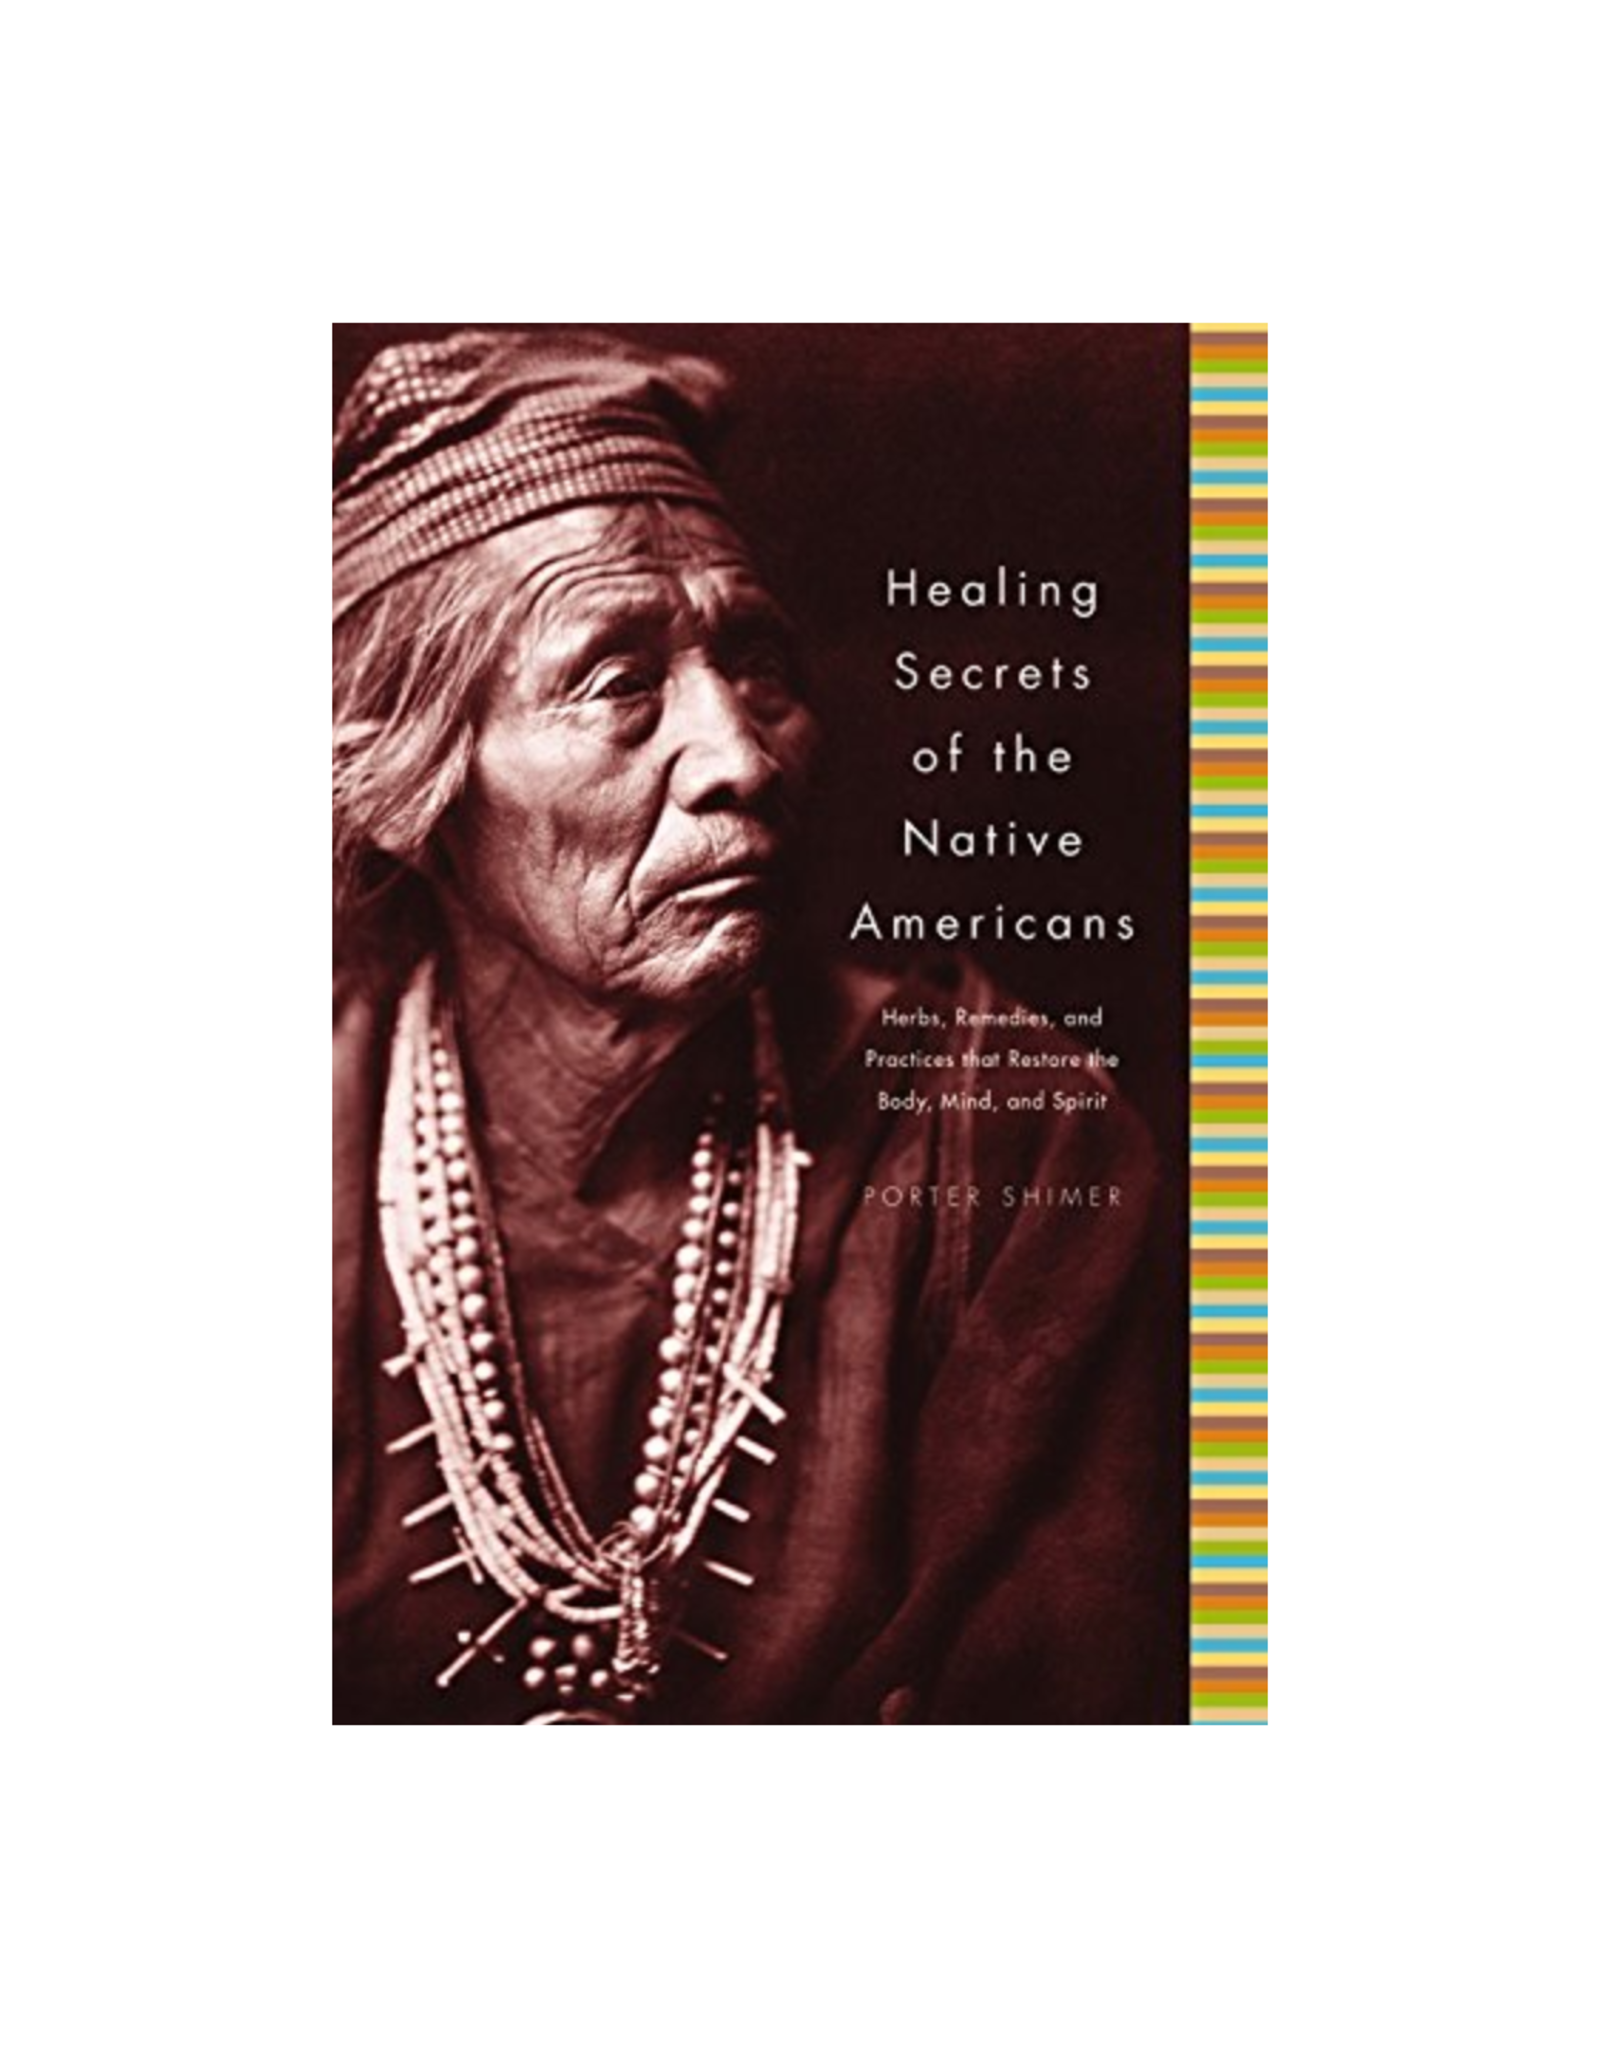 The Healing Secrets of the Native Americans